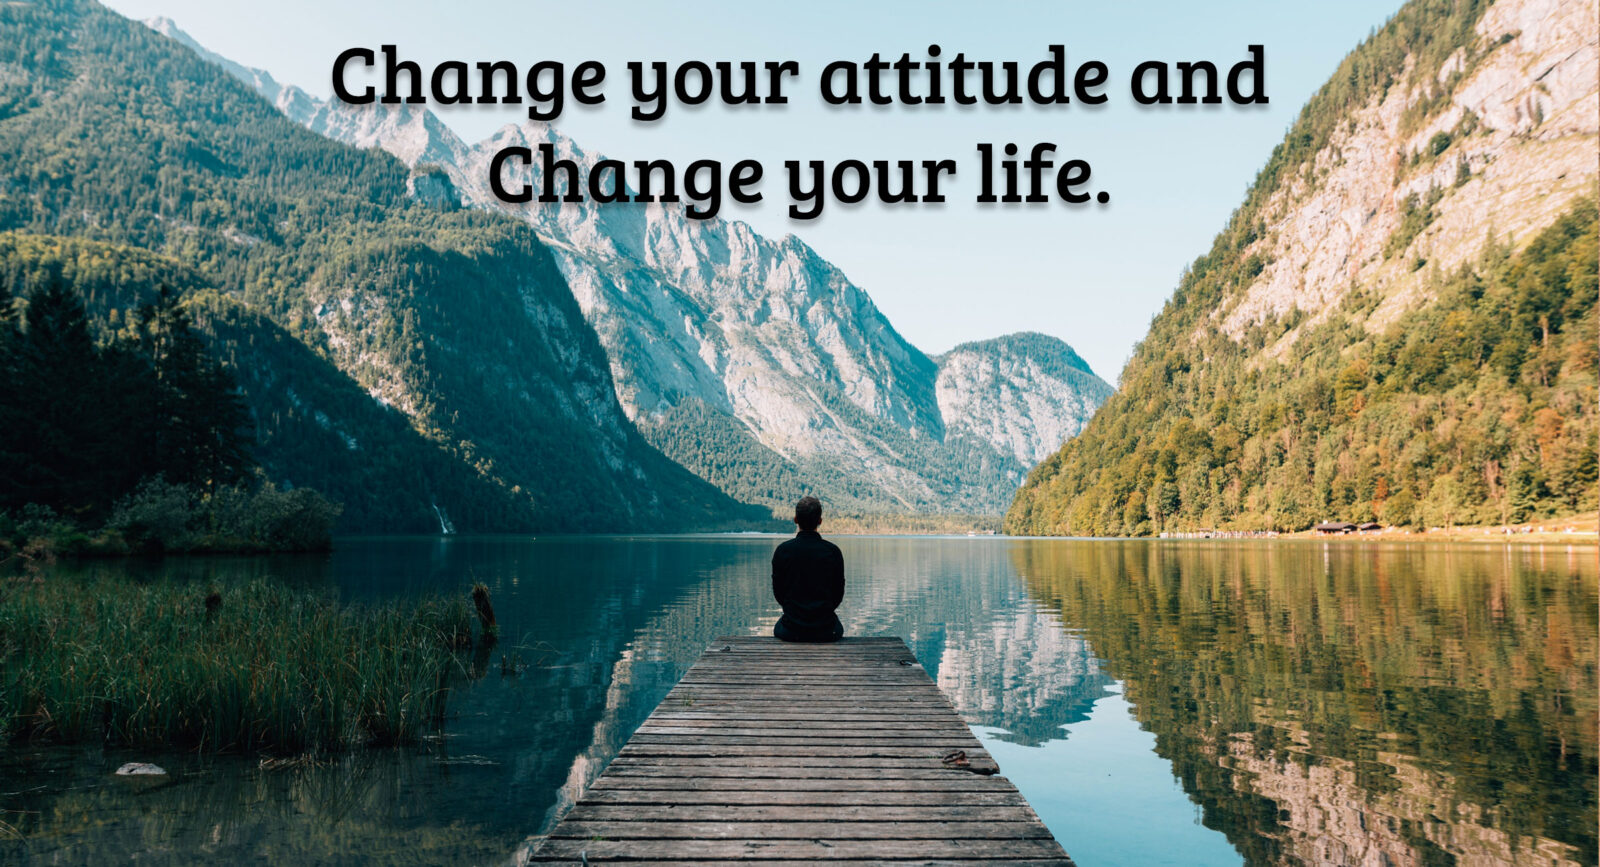 Change your attitude and change your life